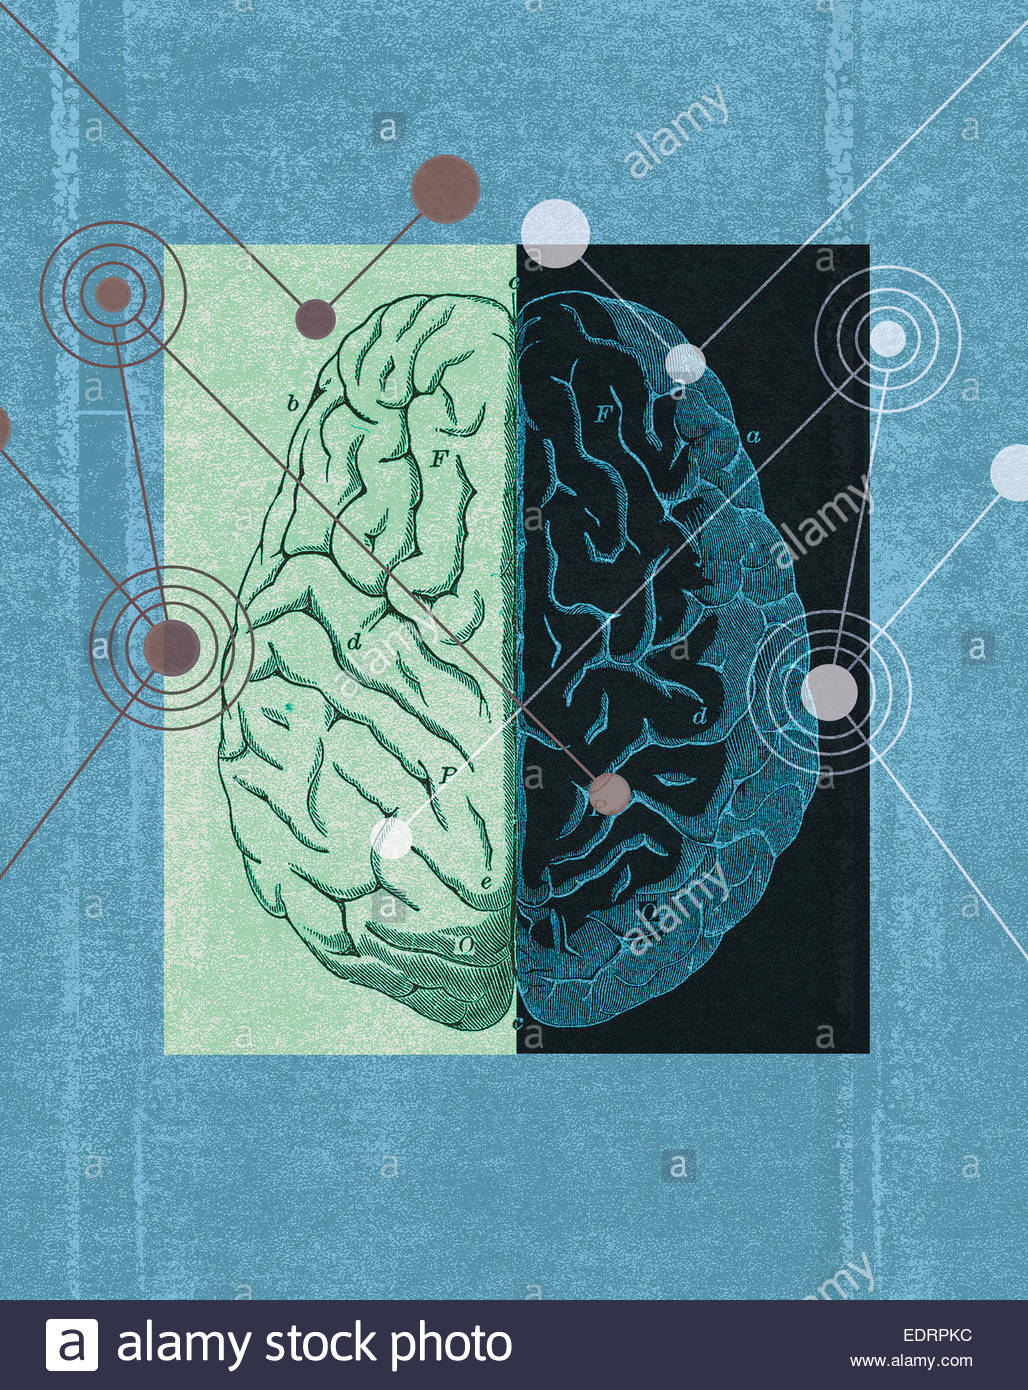 Diagram of left and right sides of brain stock photo 77354688 alamy diagram of left and right sides of brain ccuart Gallery